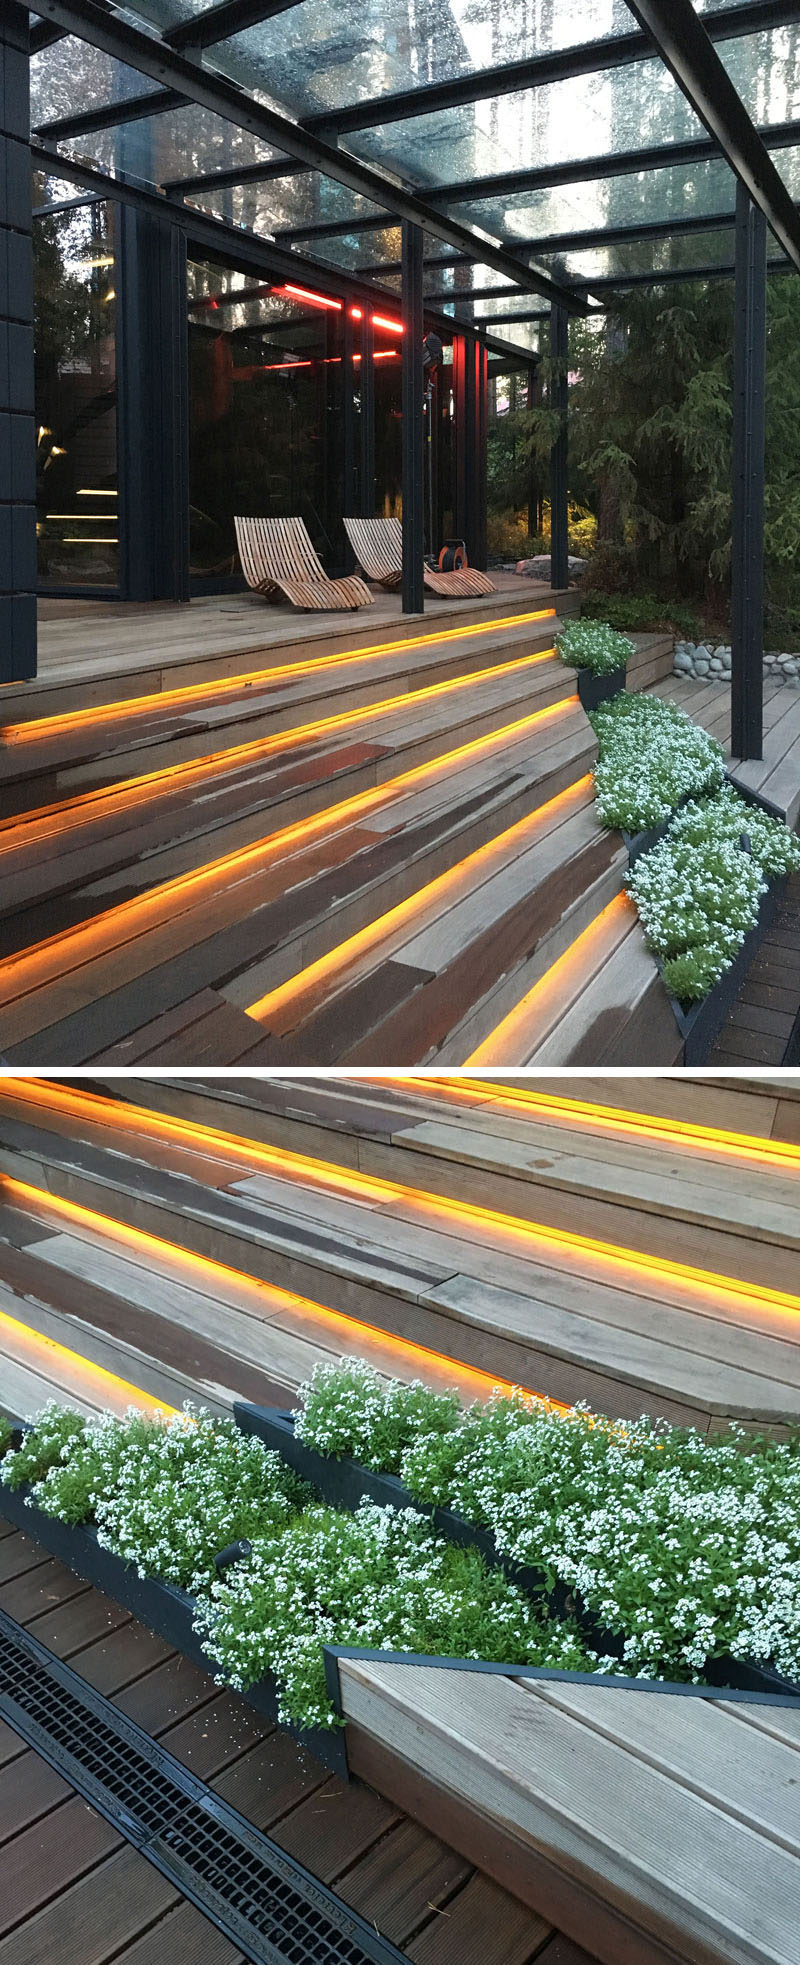 The landscape design of the outdoor space at a gym has built-in planters and hidden lighting within the wood steps.